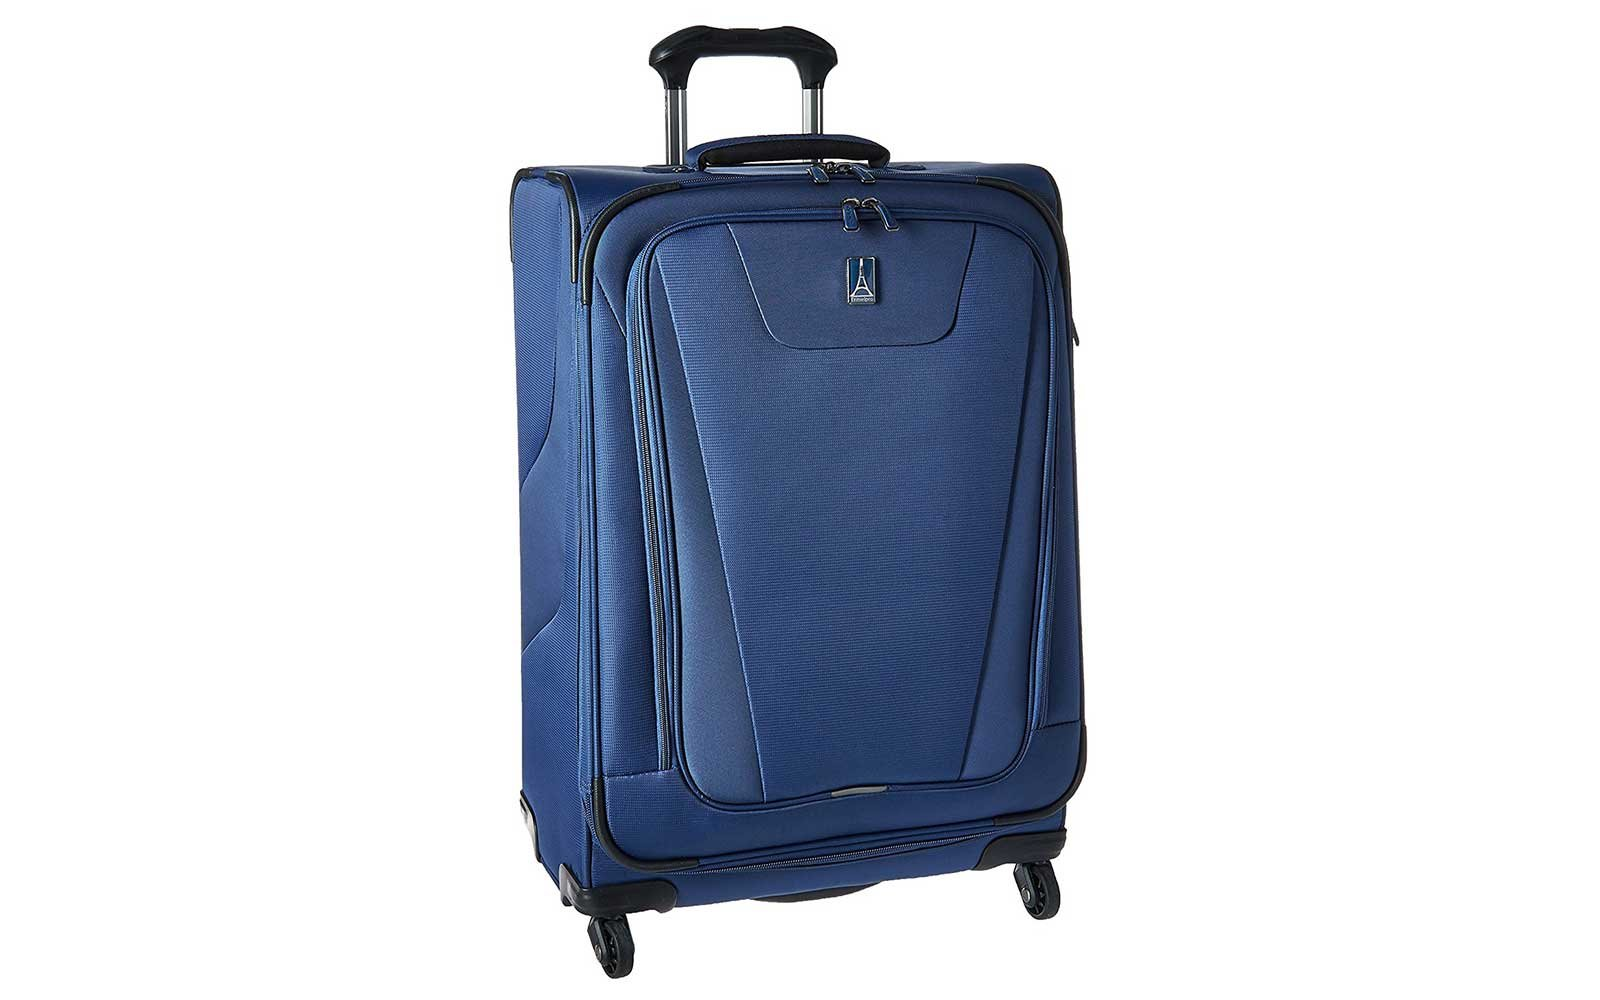 Travelpro lightweight suitcase